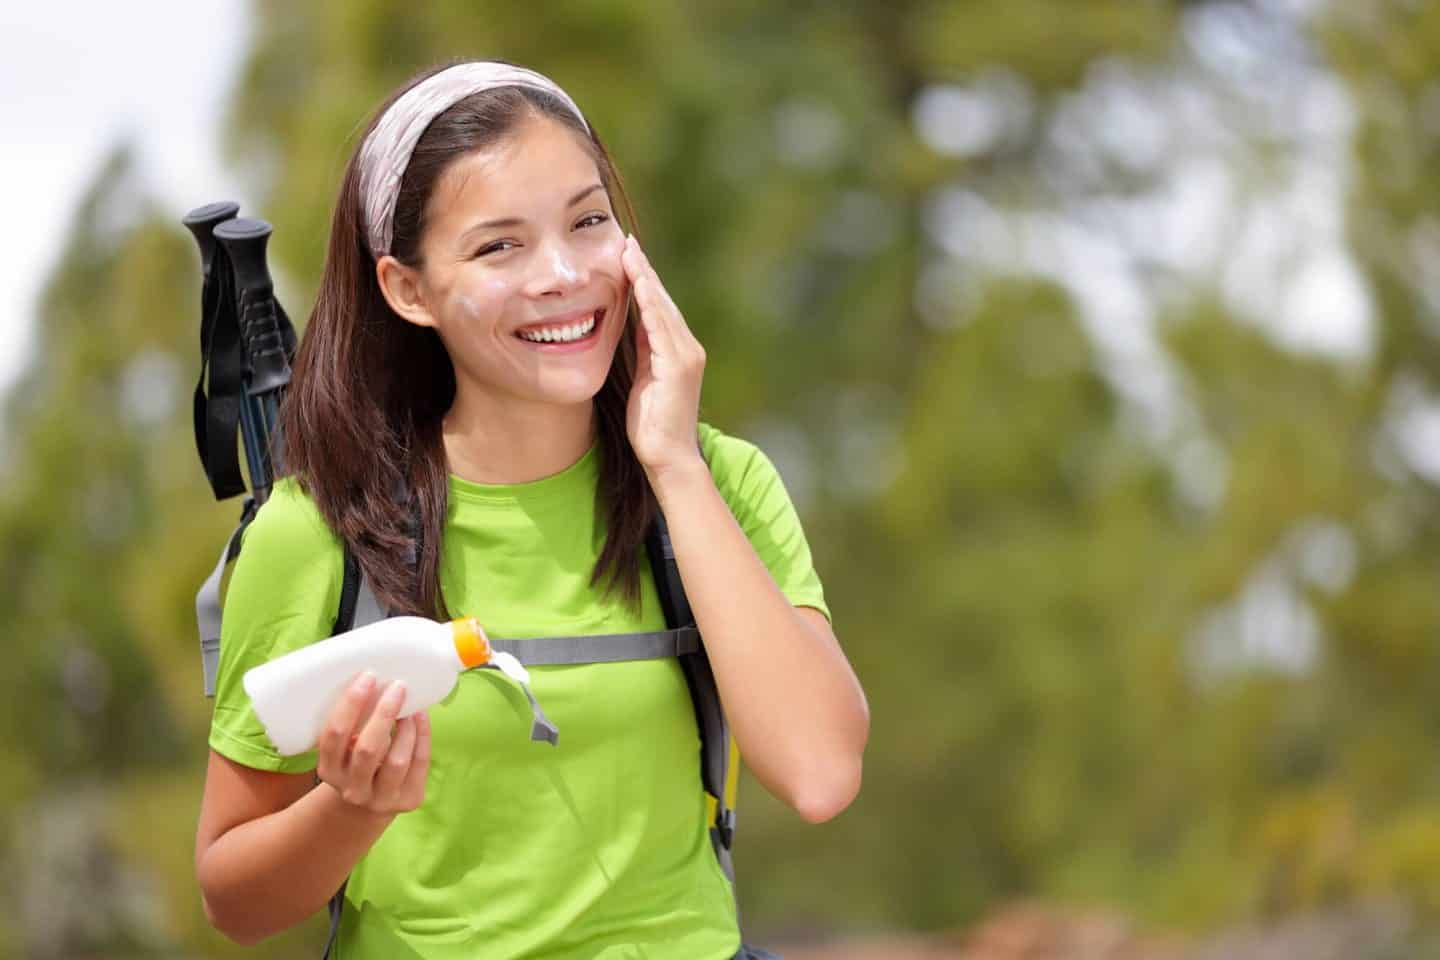 Sunscreen is a crucial part of staying safe outdoors these days